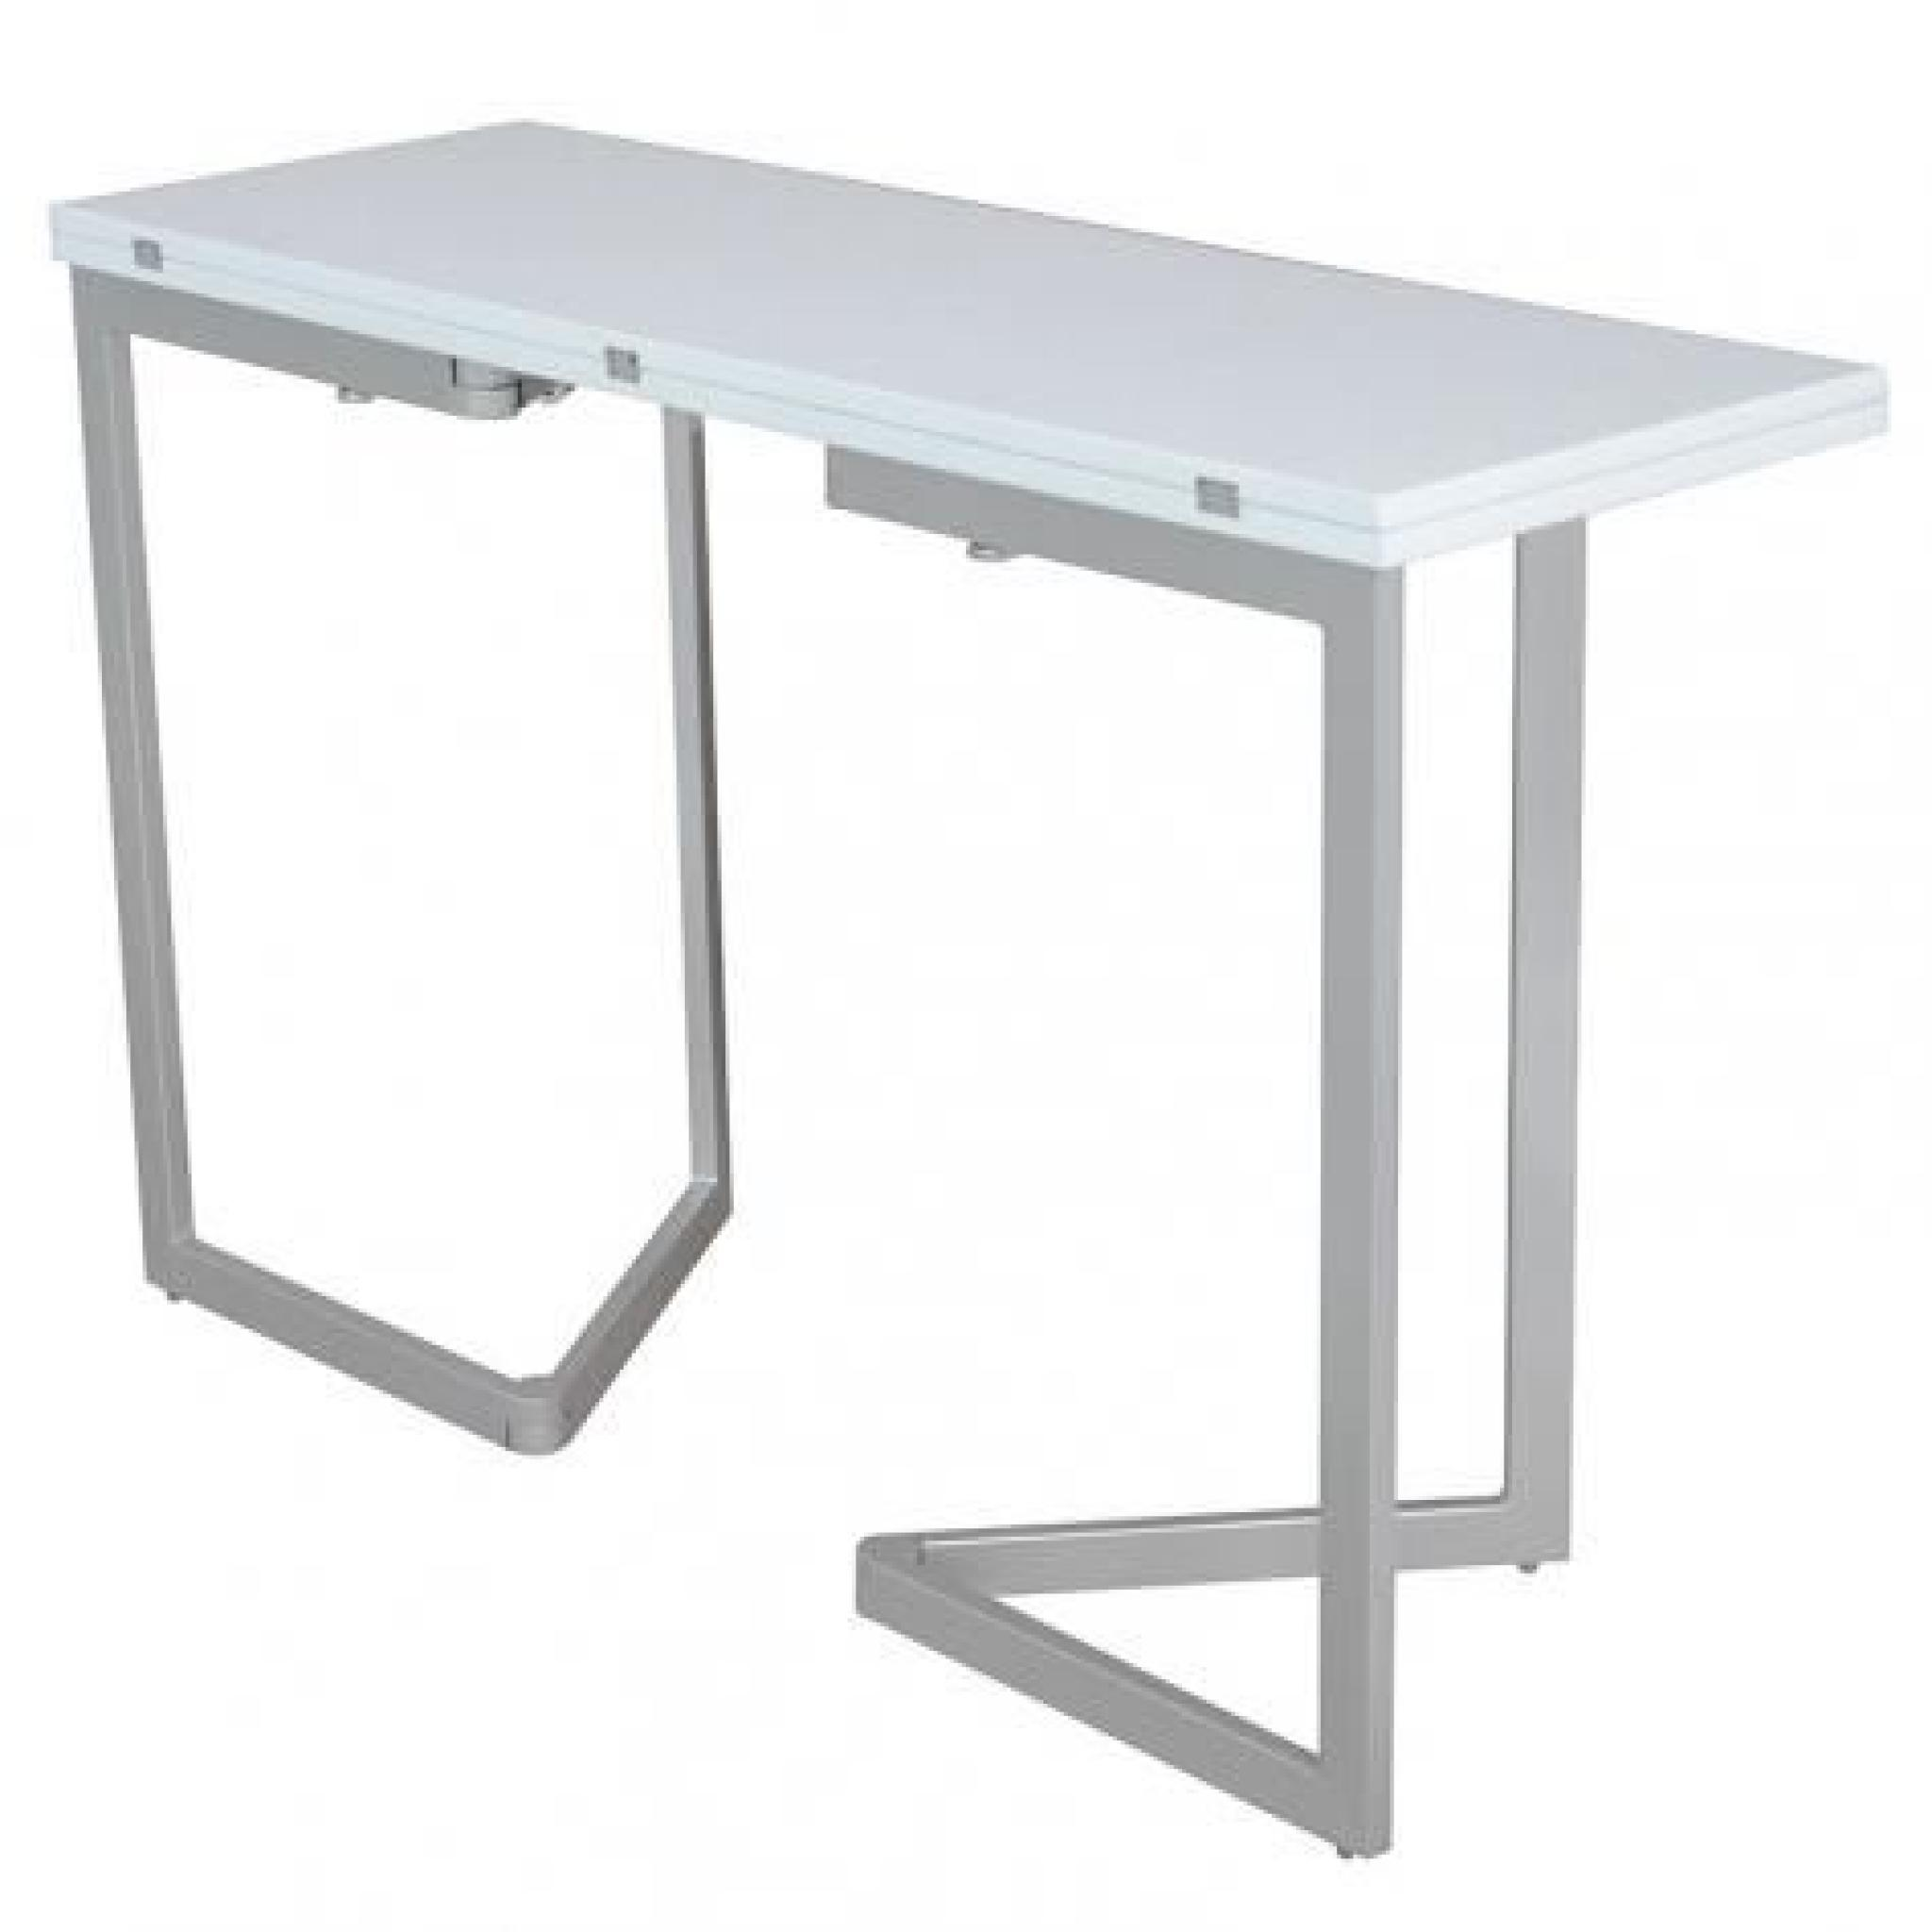 Table console extensible blanche laqu e talia achat for Table sejour extensible design